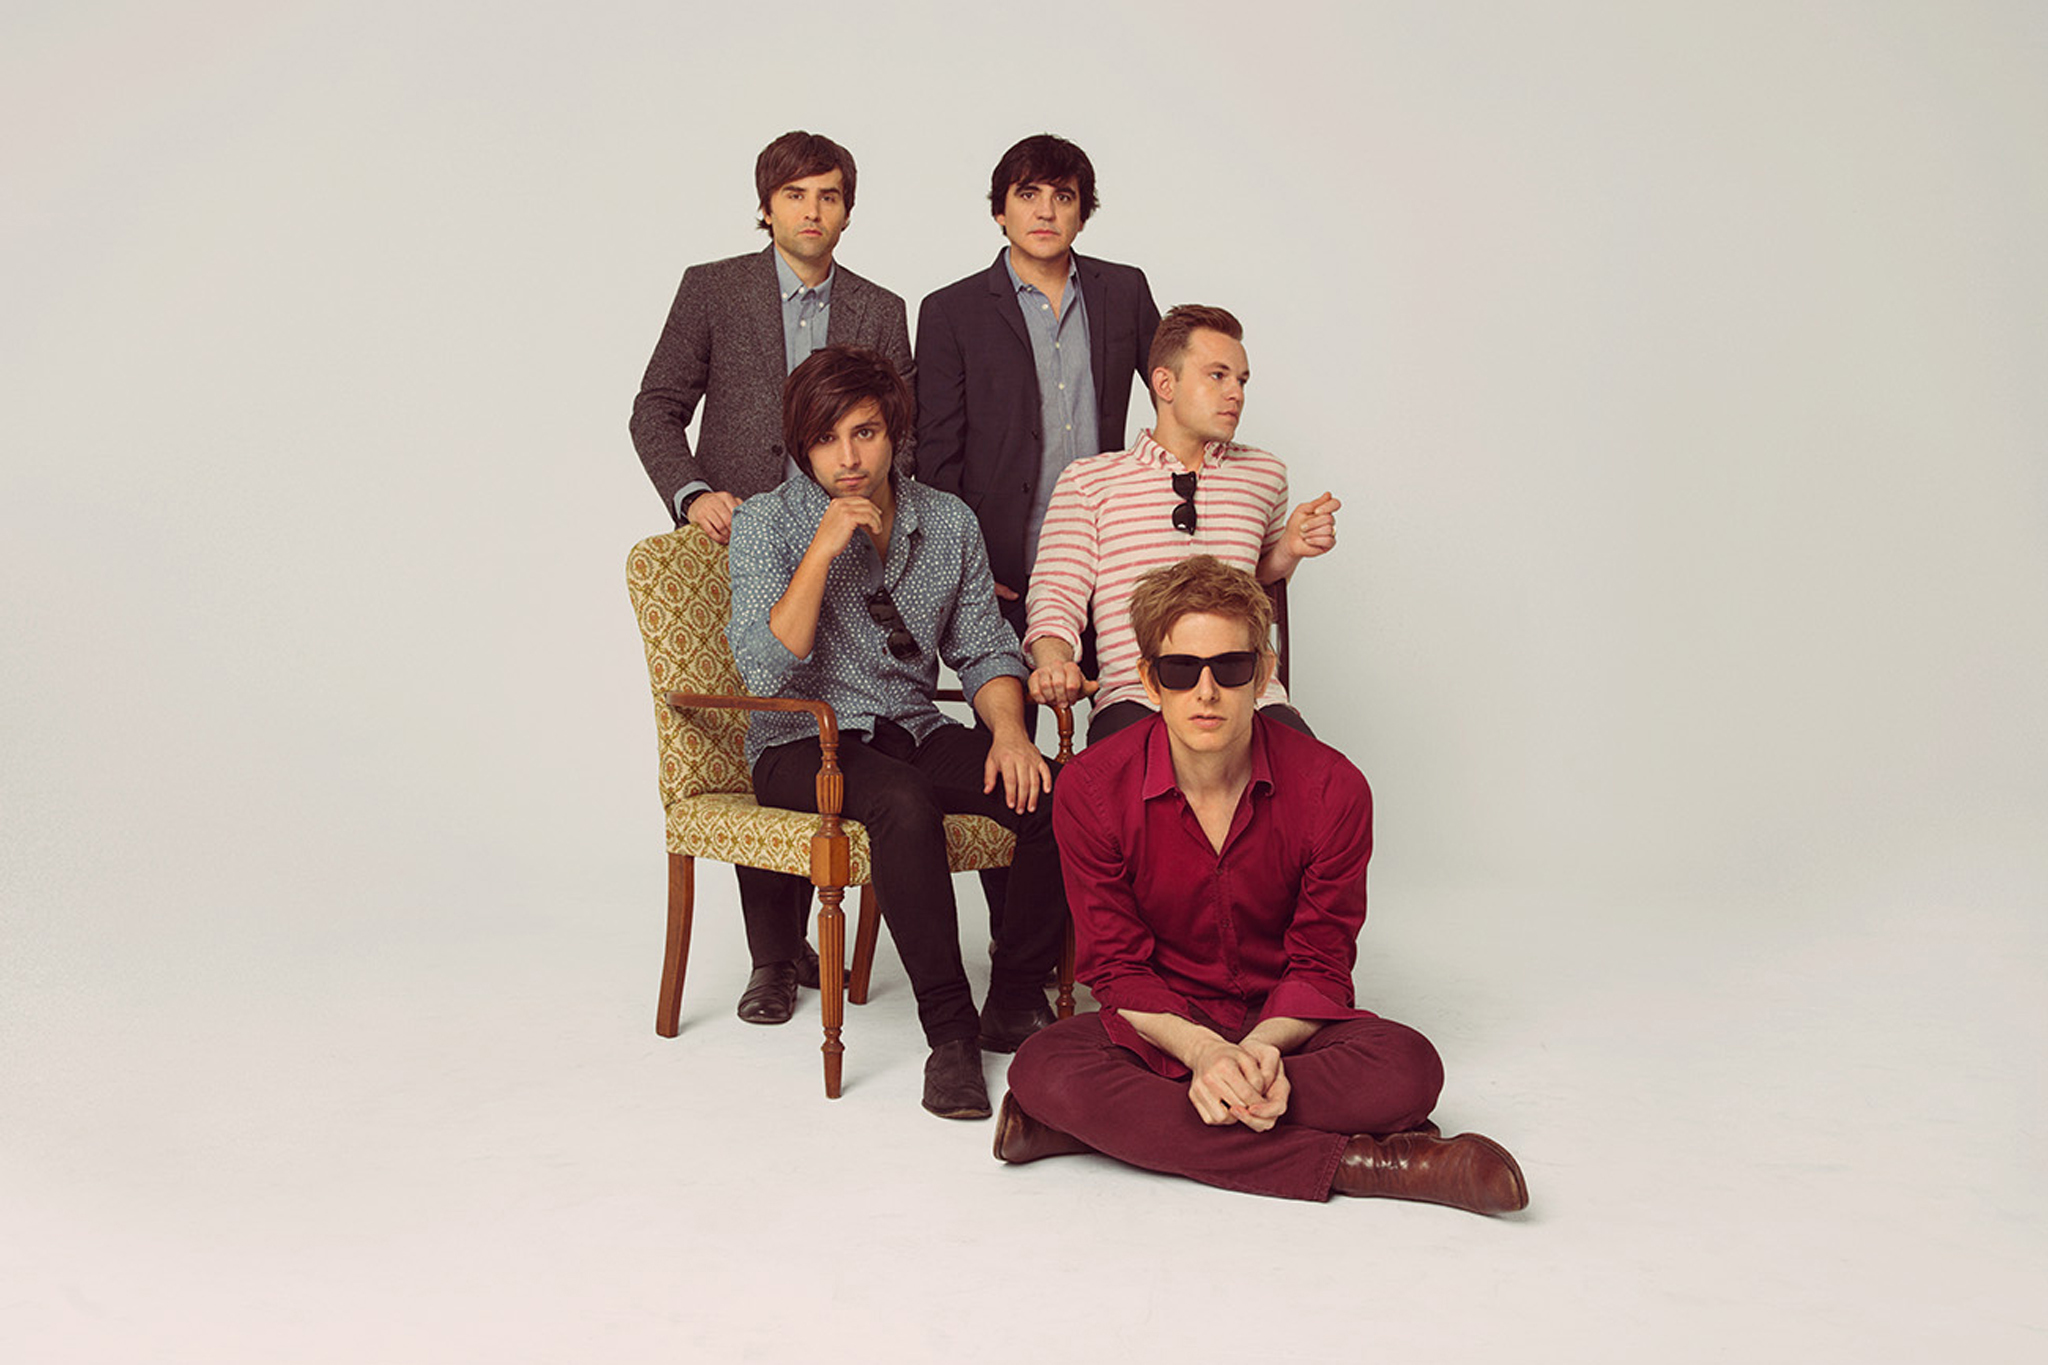 Spoon | Central Park, Rumsey Playfield; Sept 10